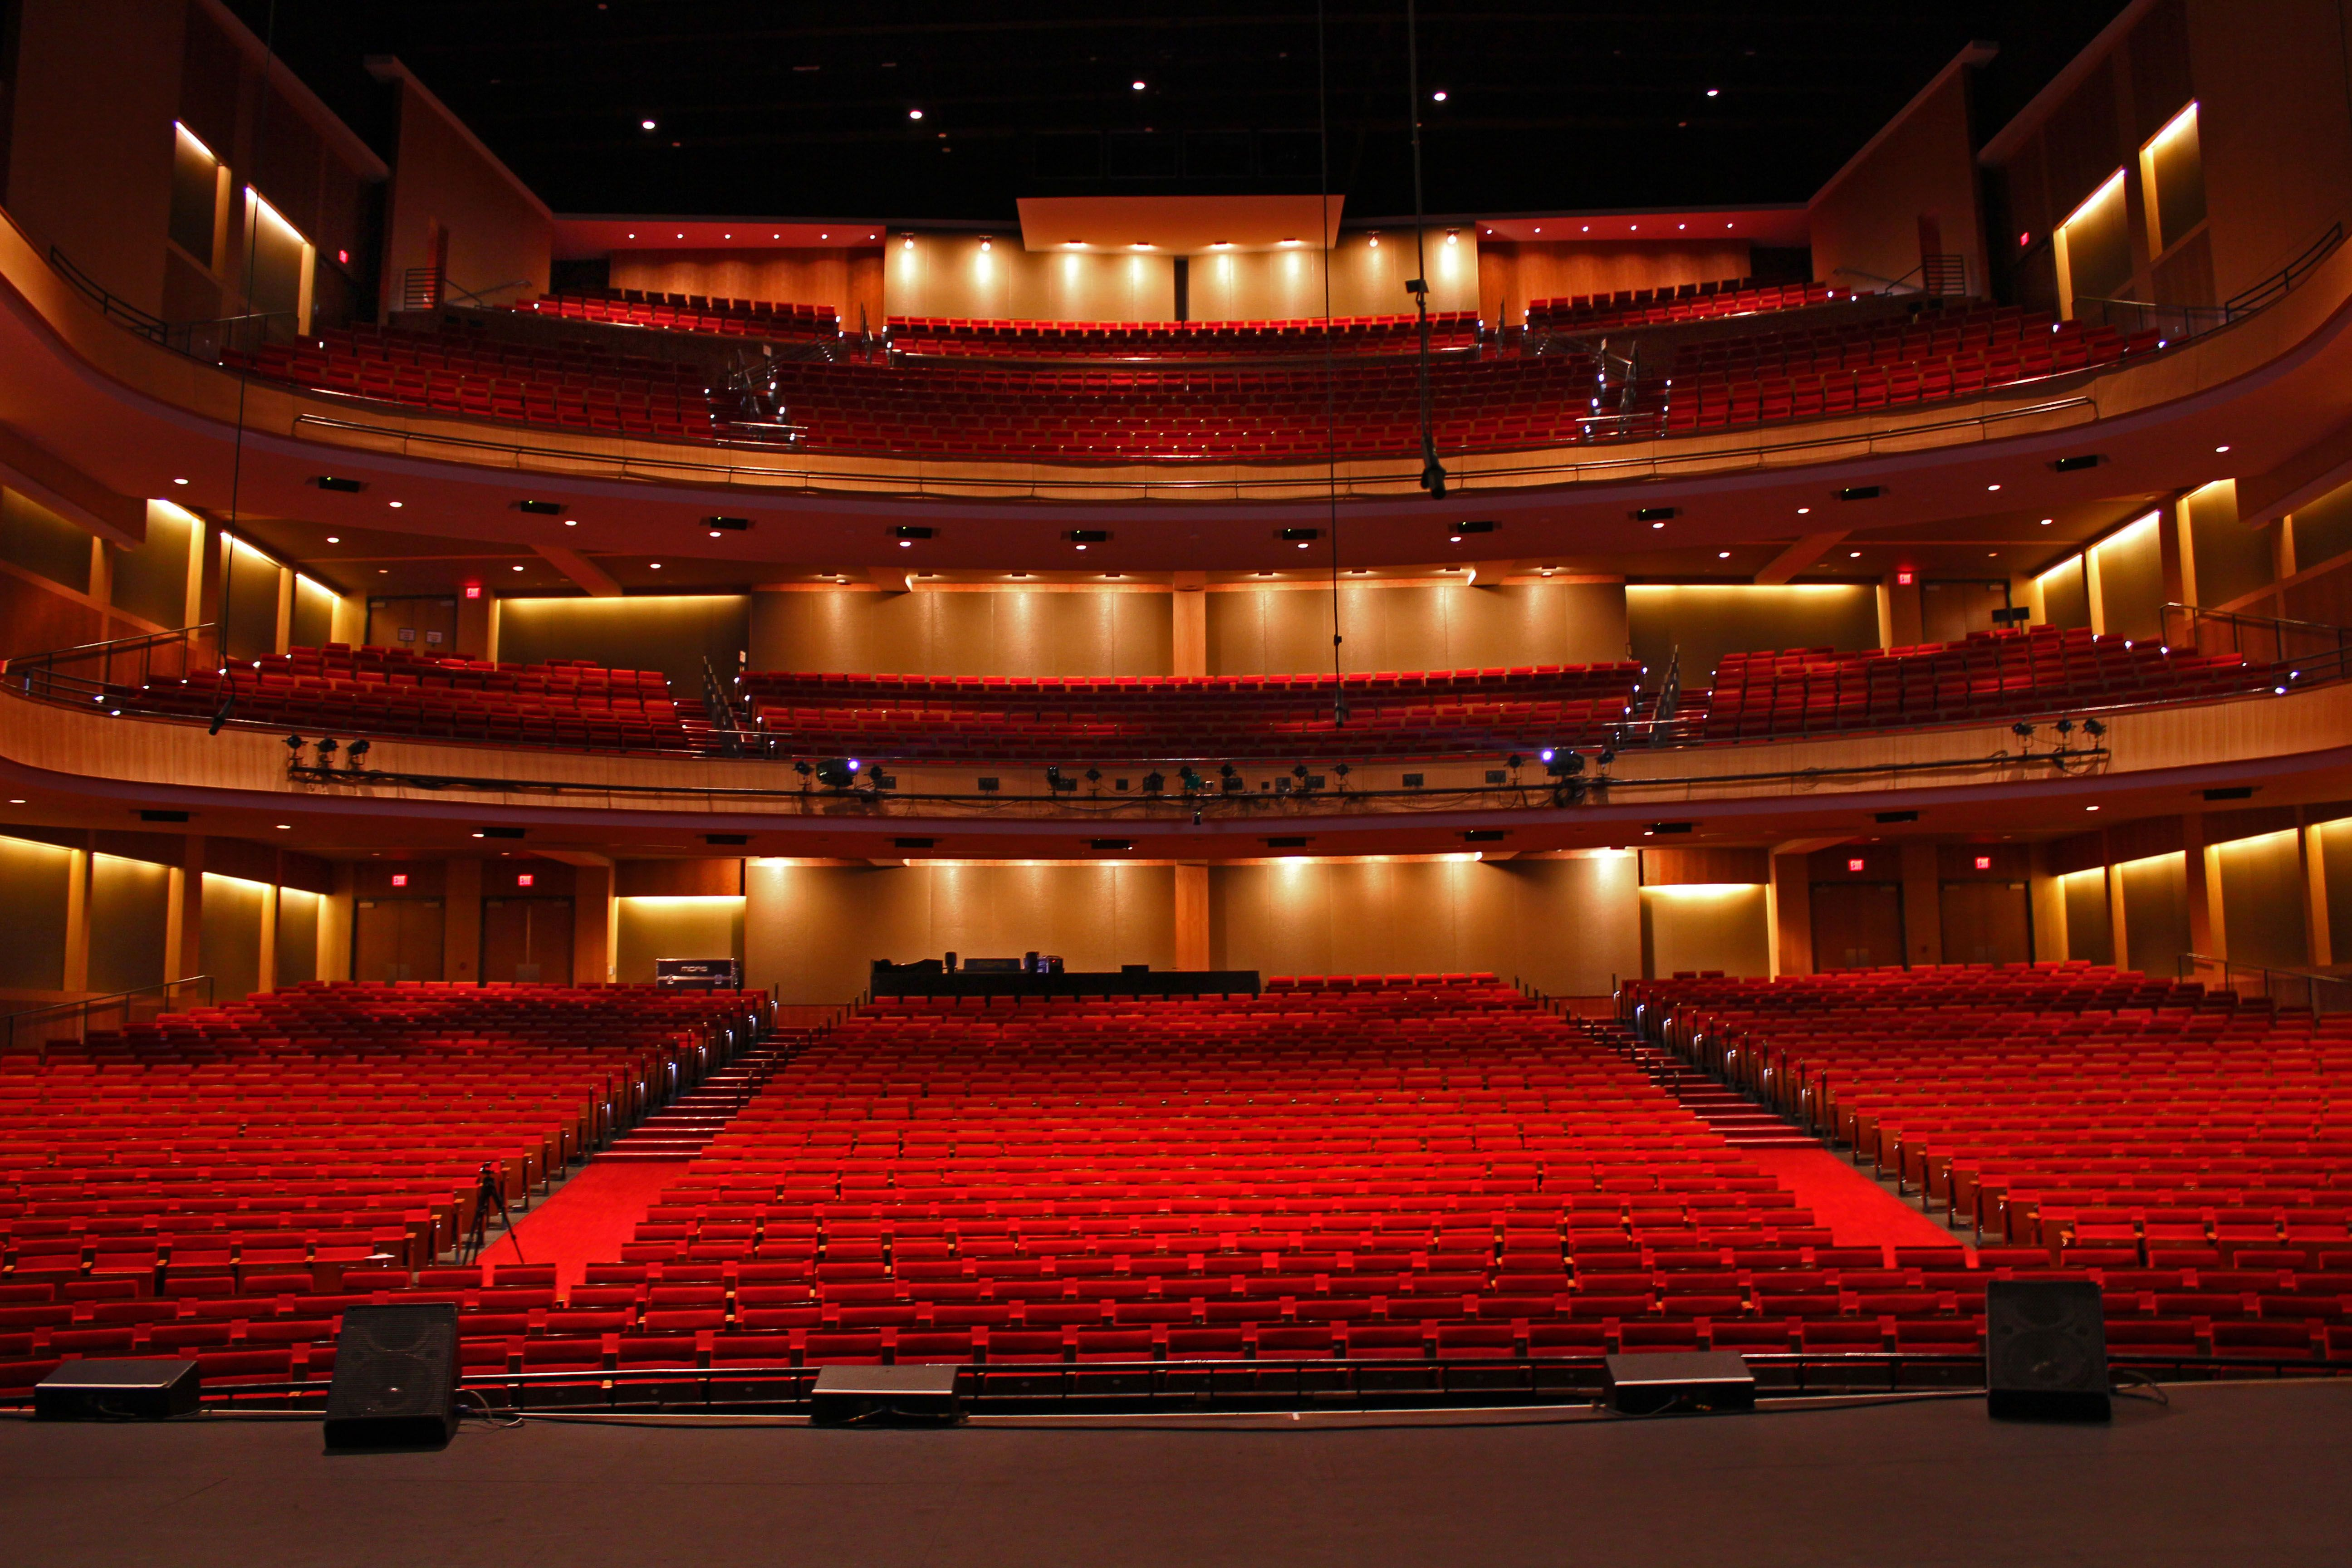 durham performing arts center durham nc we are within walking